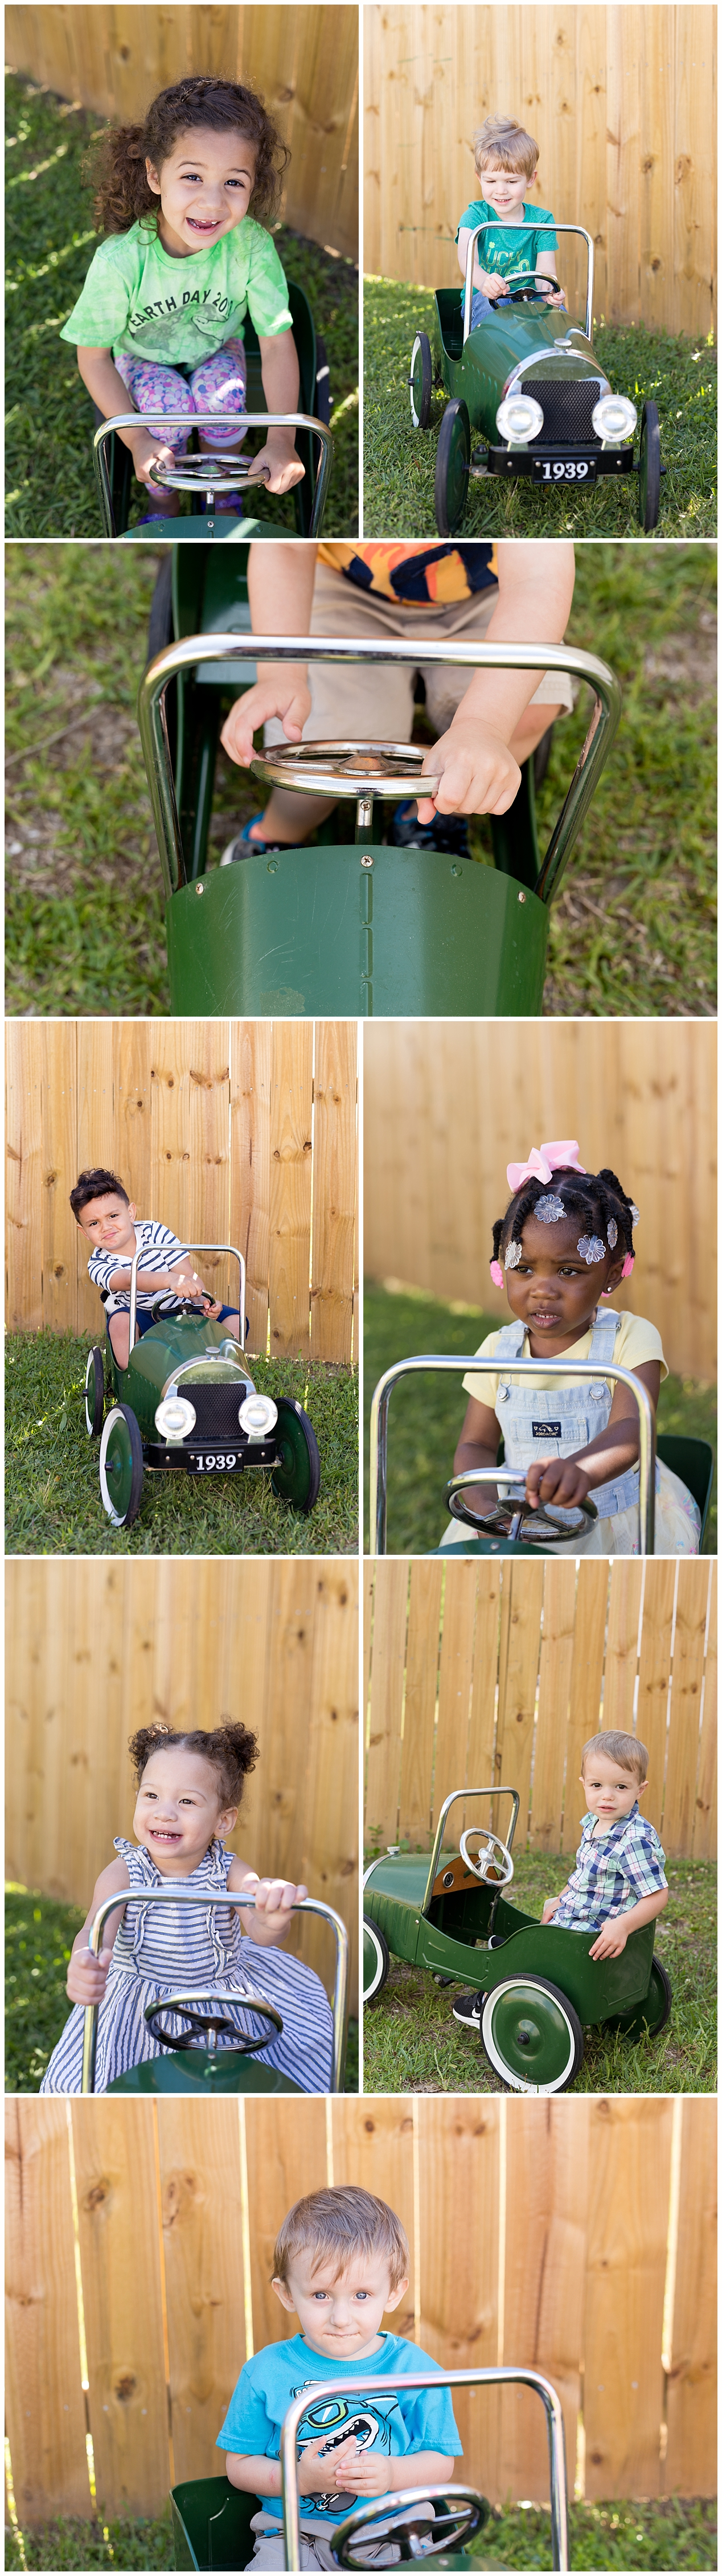 Ocean Springs preschool pictures with toy antique car